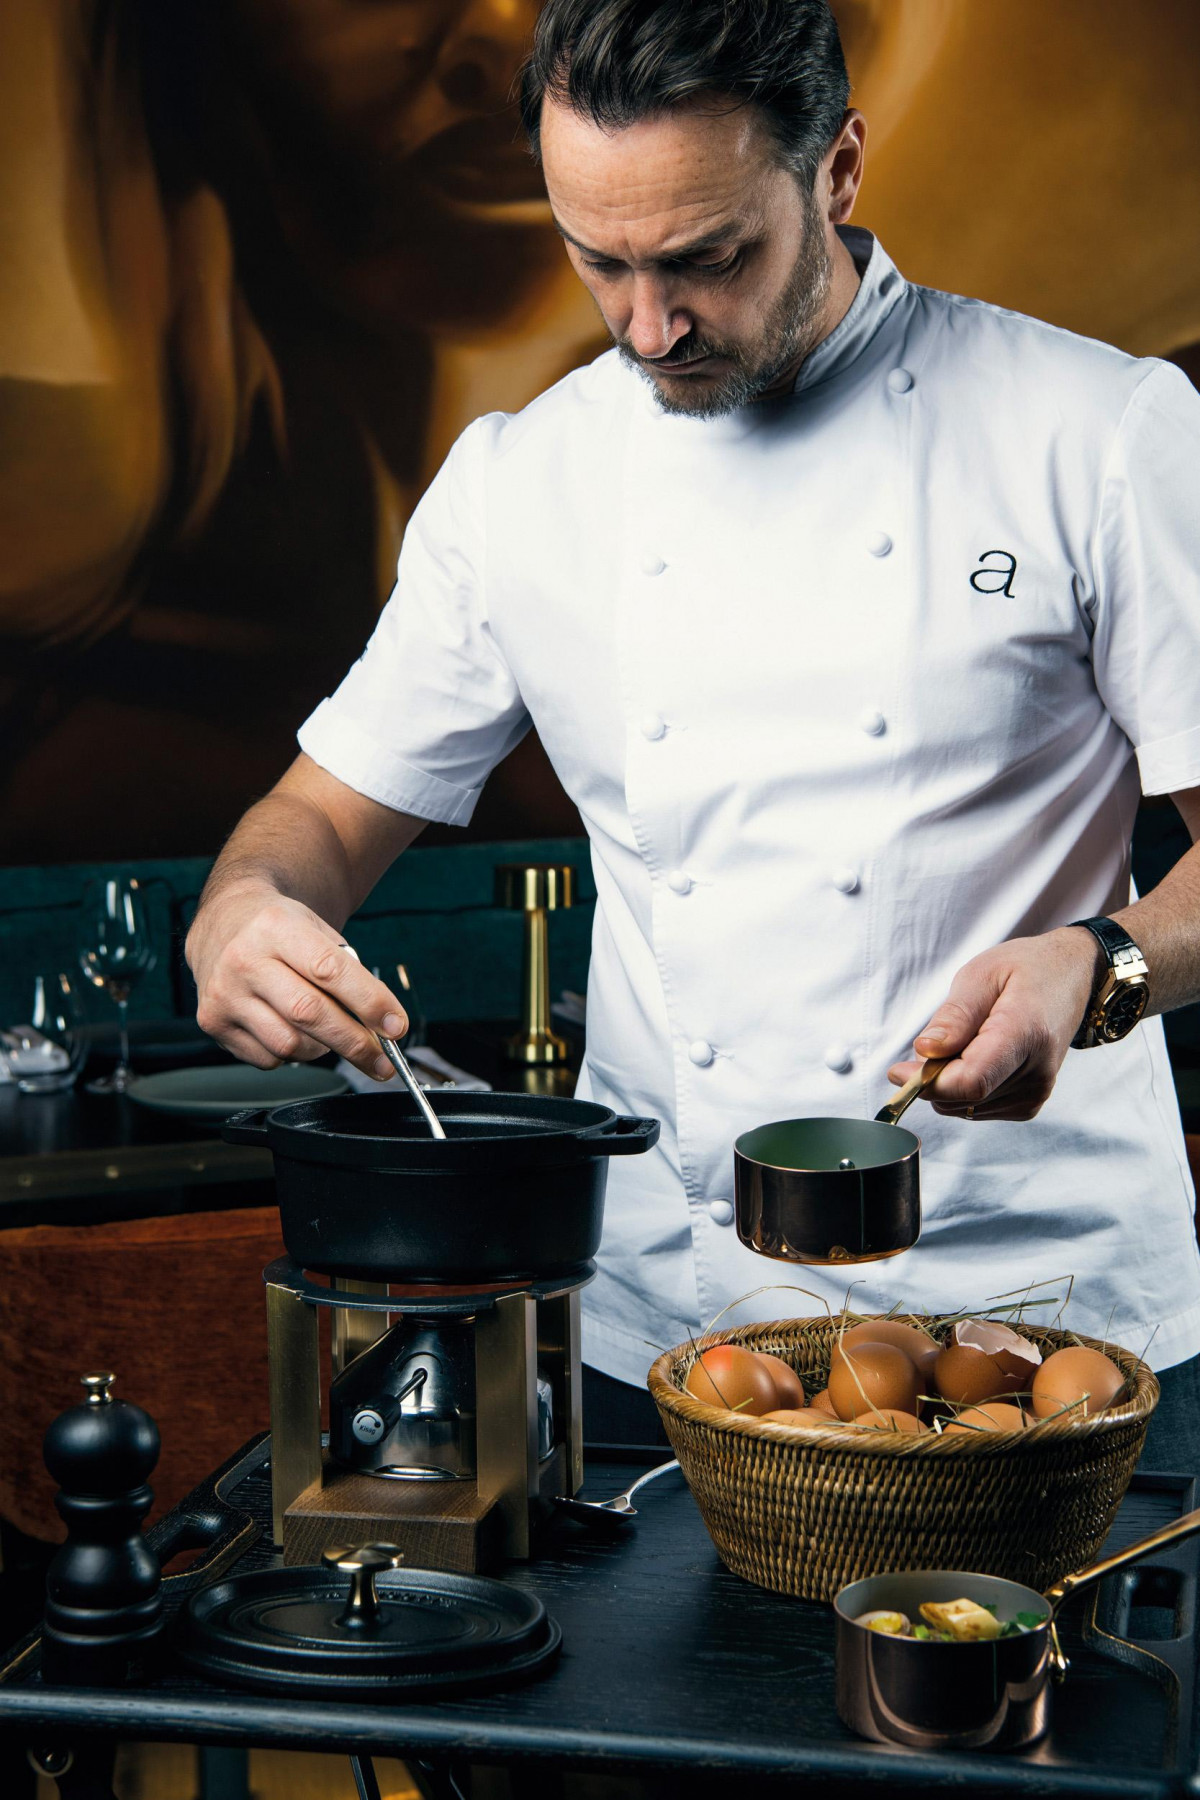 Jason Atherton prepares tableside at King's Social House, St. Moritz